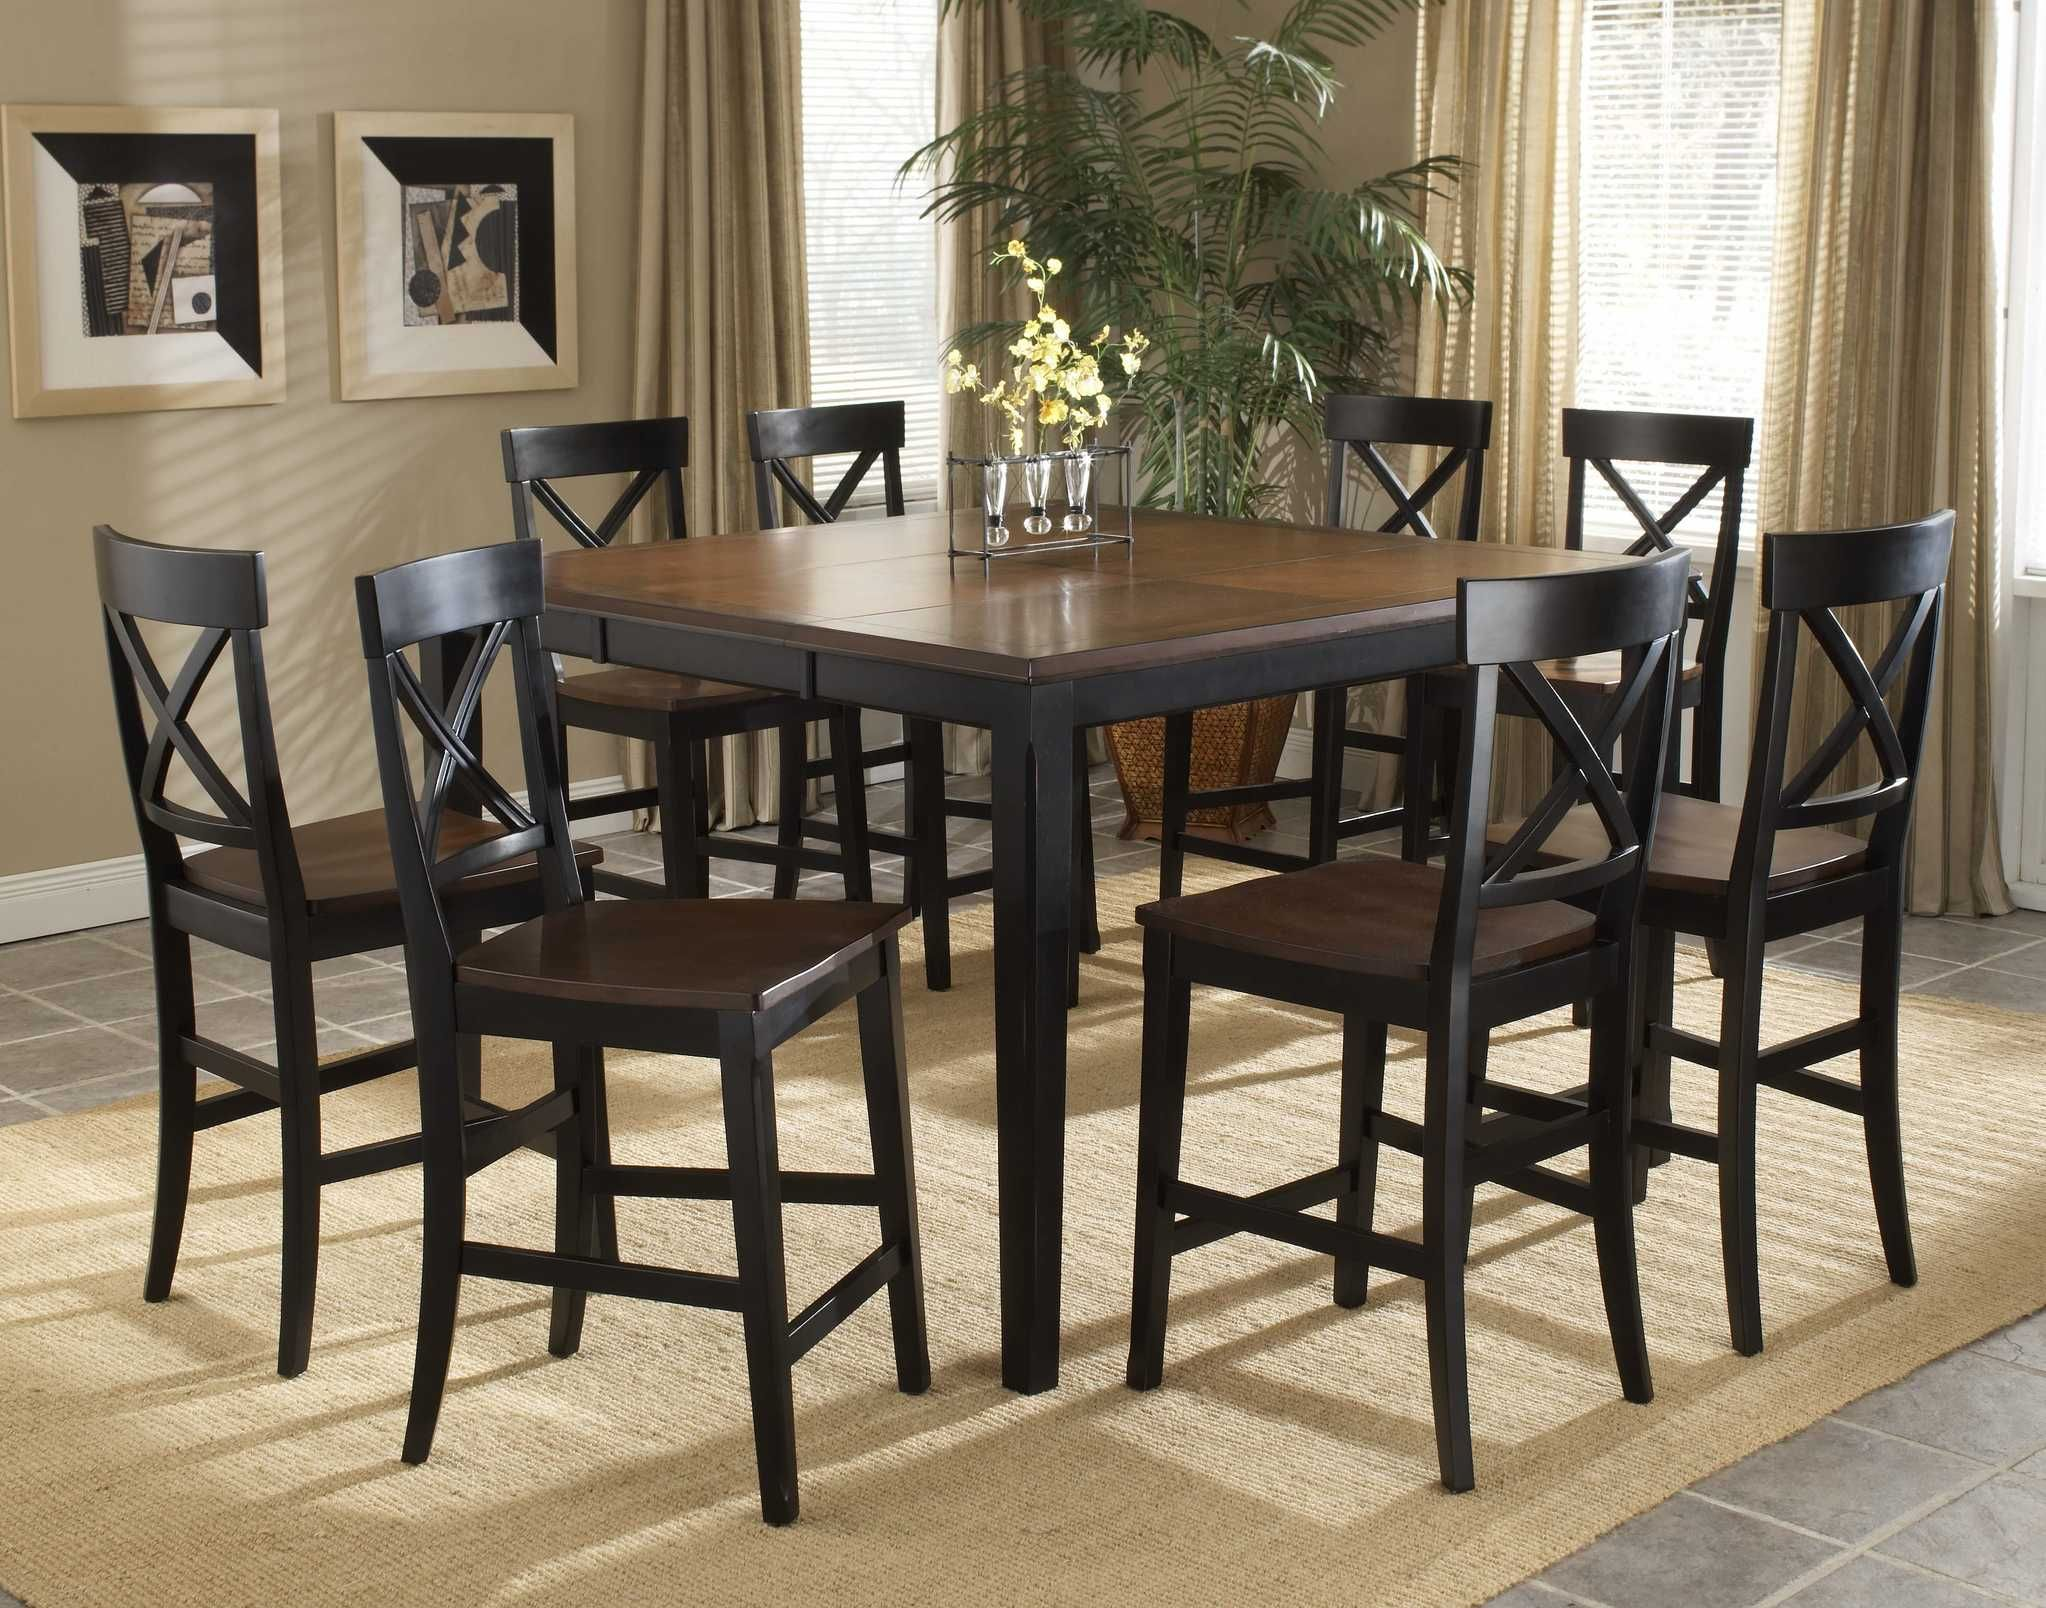 Transitional Distressed Black Counter Height Dining Room Table Set Extraordinary Height Dining Room Table Design Inspiration